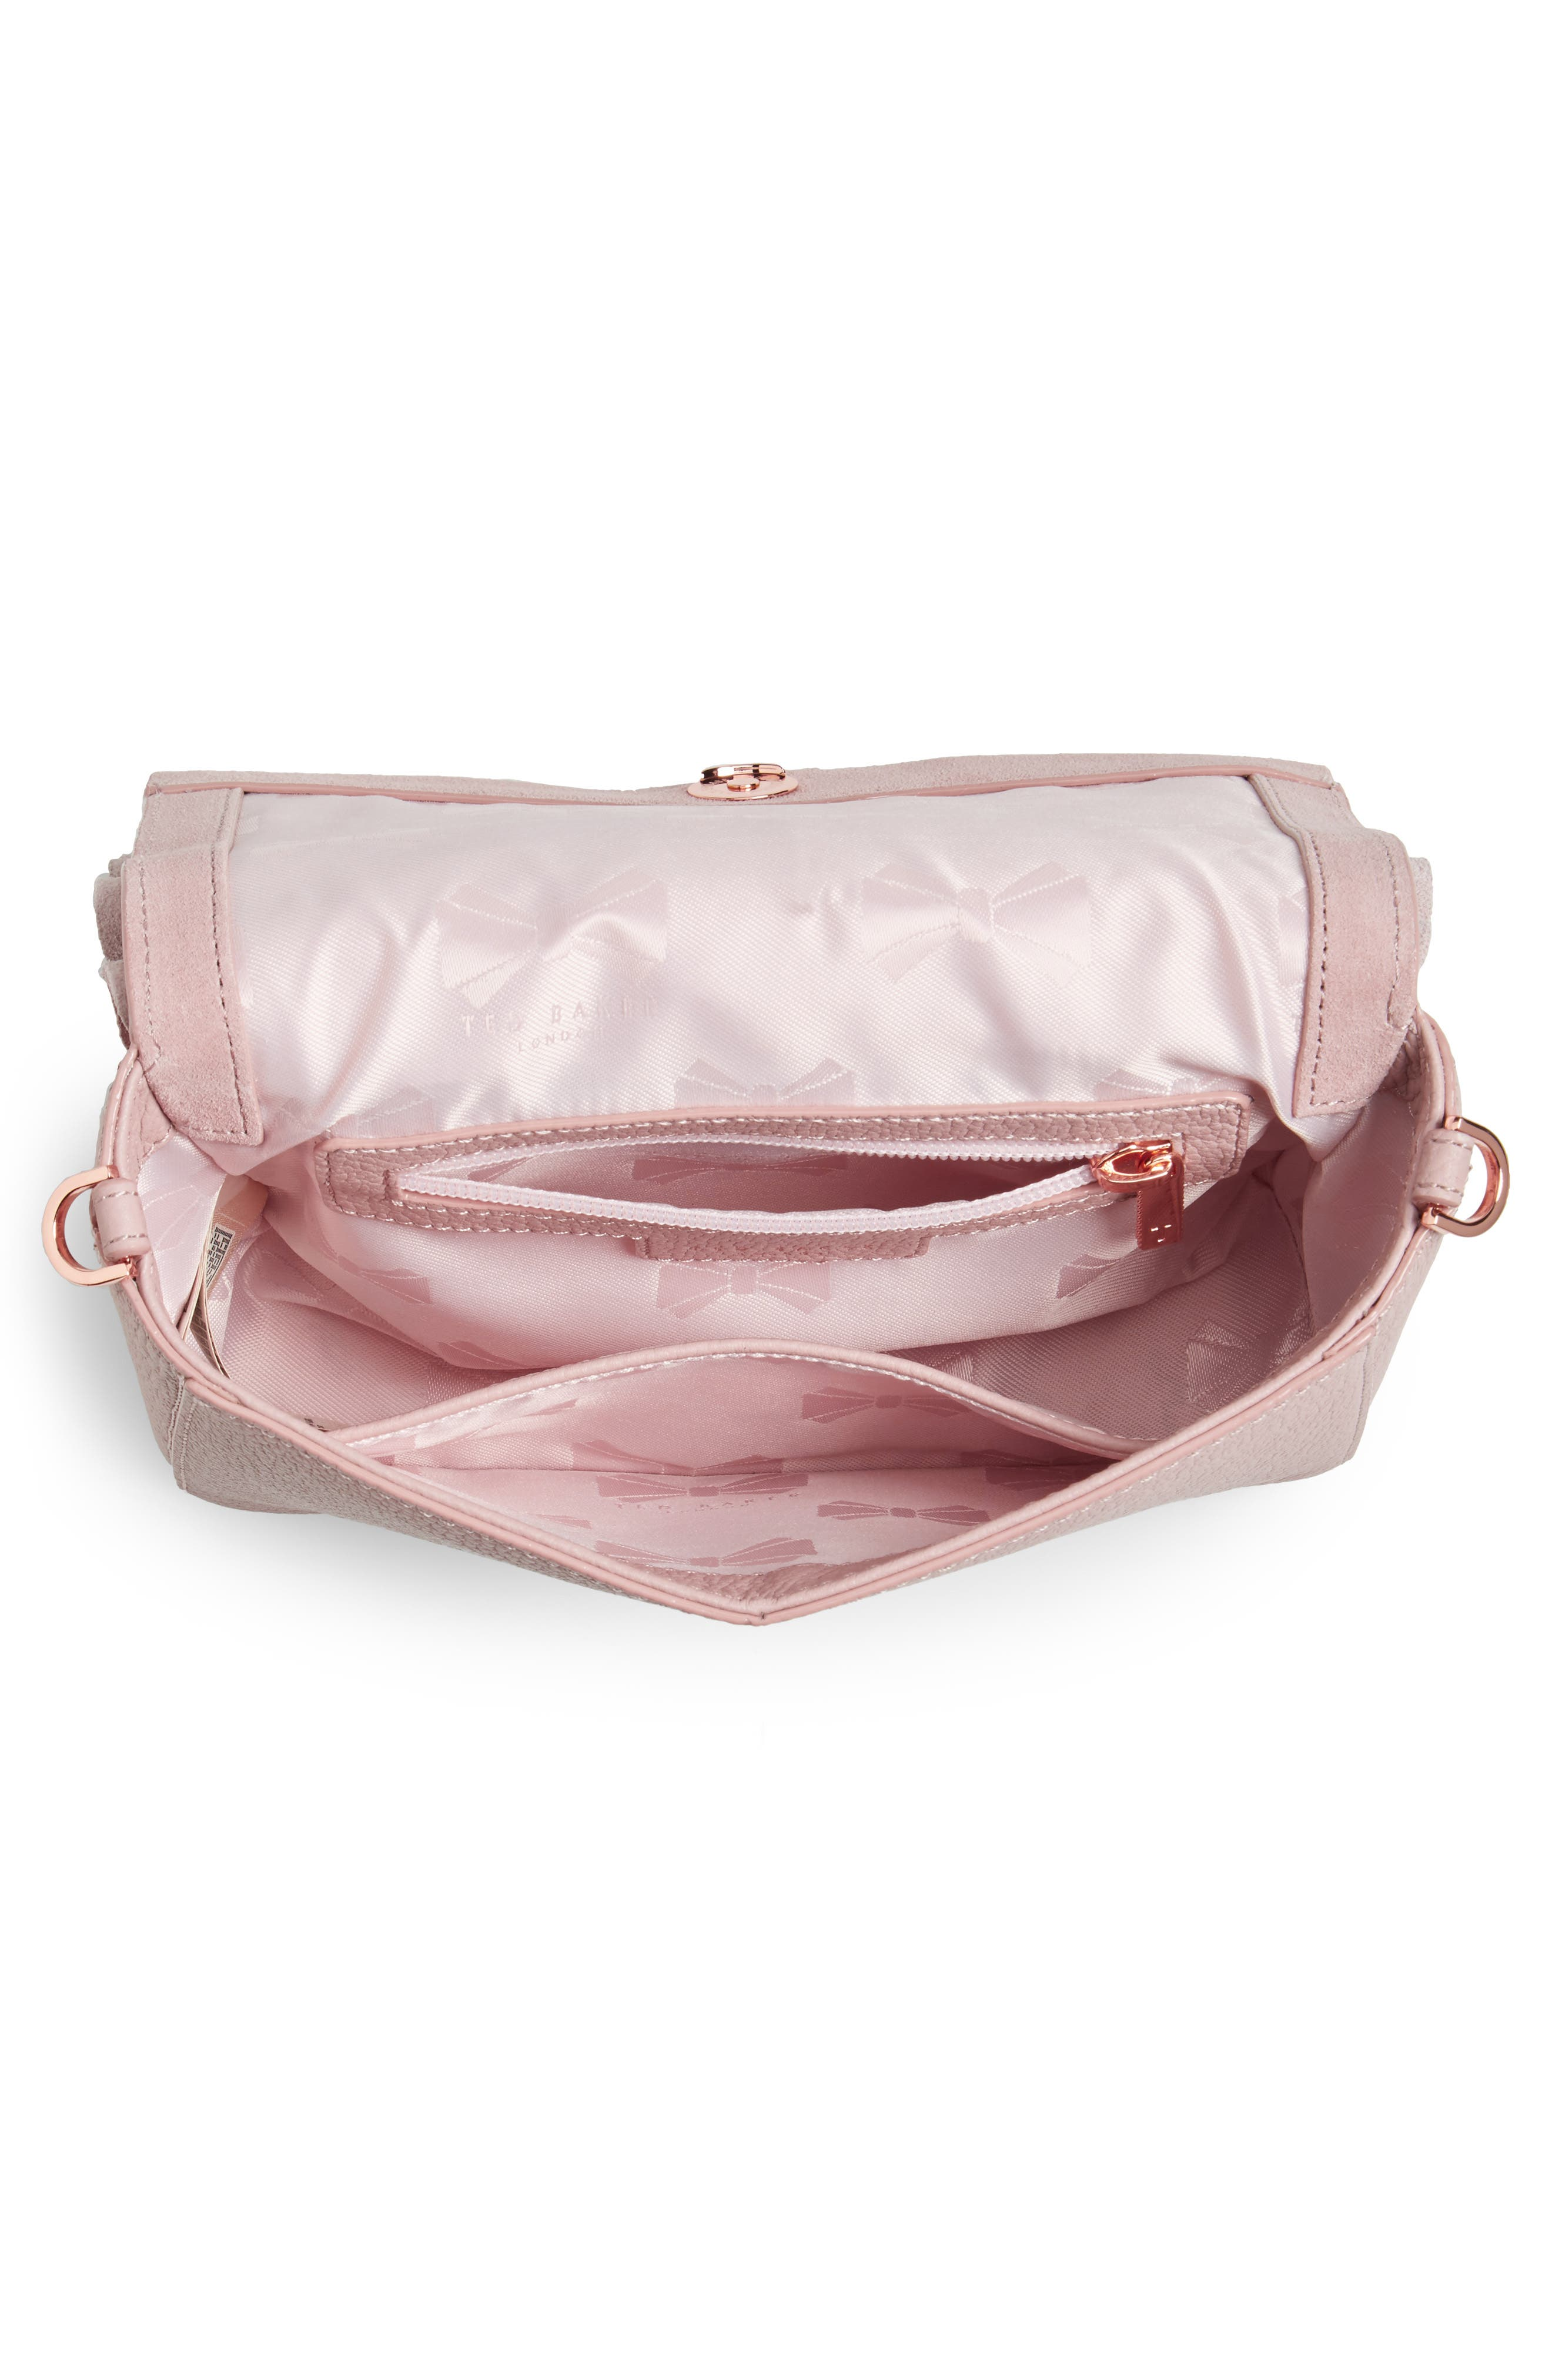 Nerinee Bow Buckle Clutch,                             Alternate thumbnail 12, color,